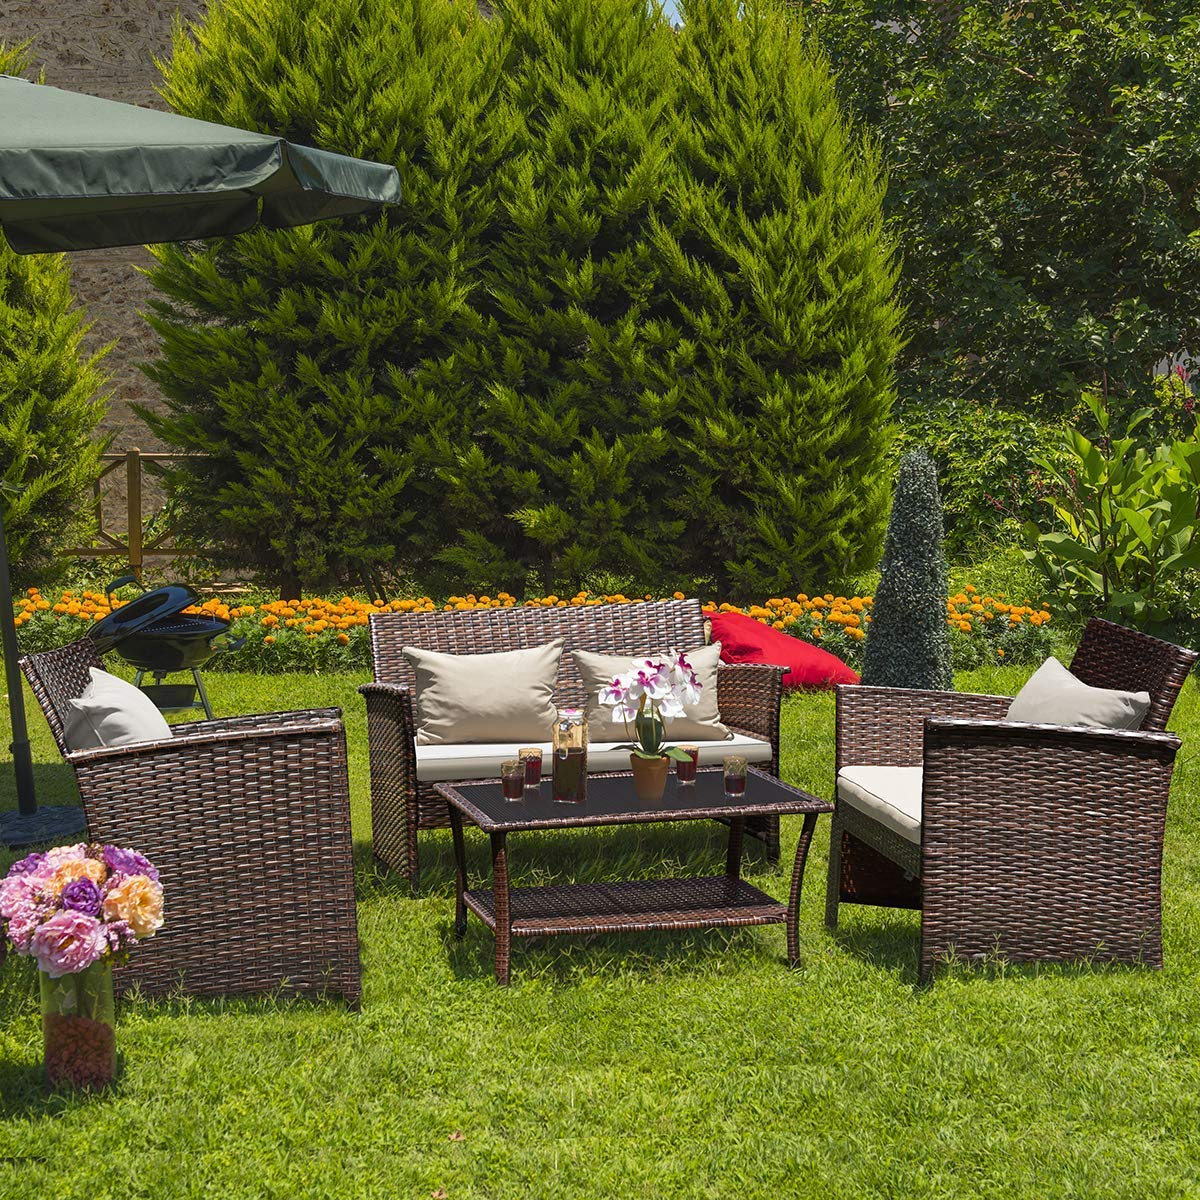 Tangkula AM1567HM Roll Over Image to Zoom Rattan Sofas 4 pcs Wicker Set Outdoor Patio Furniture